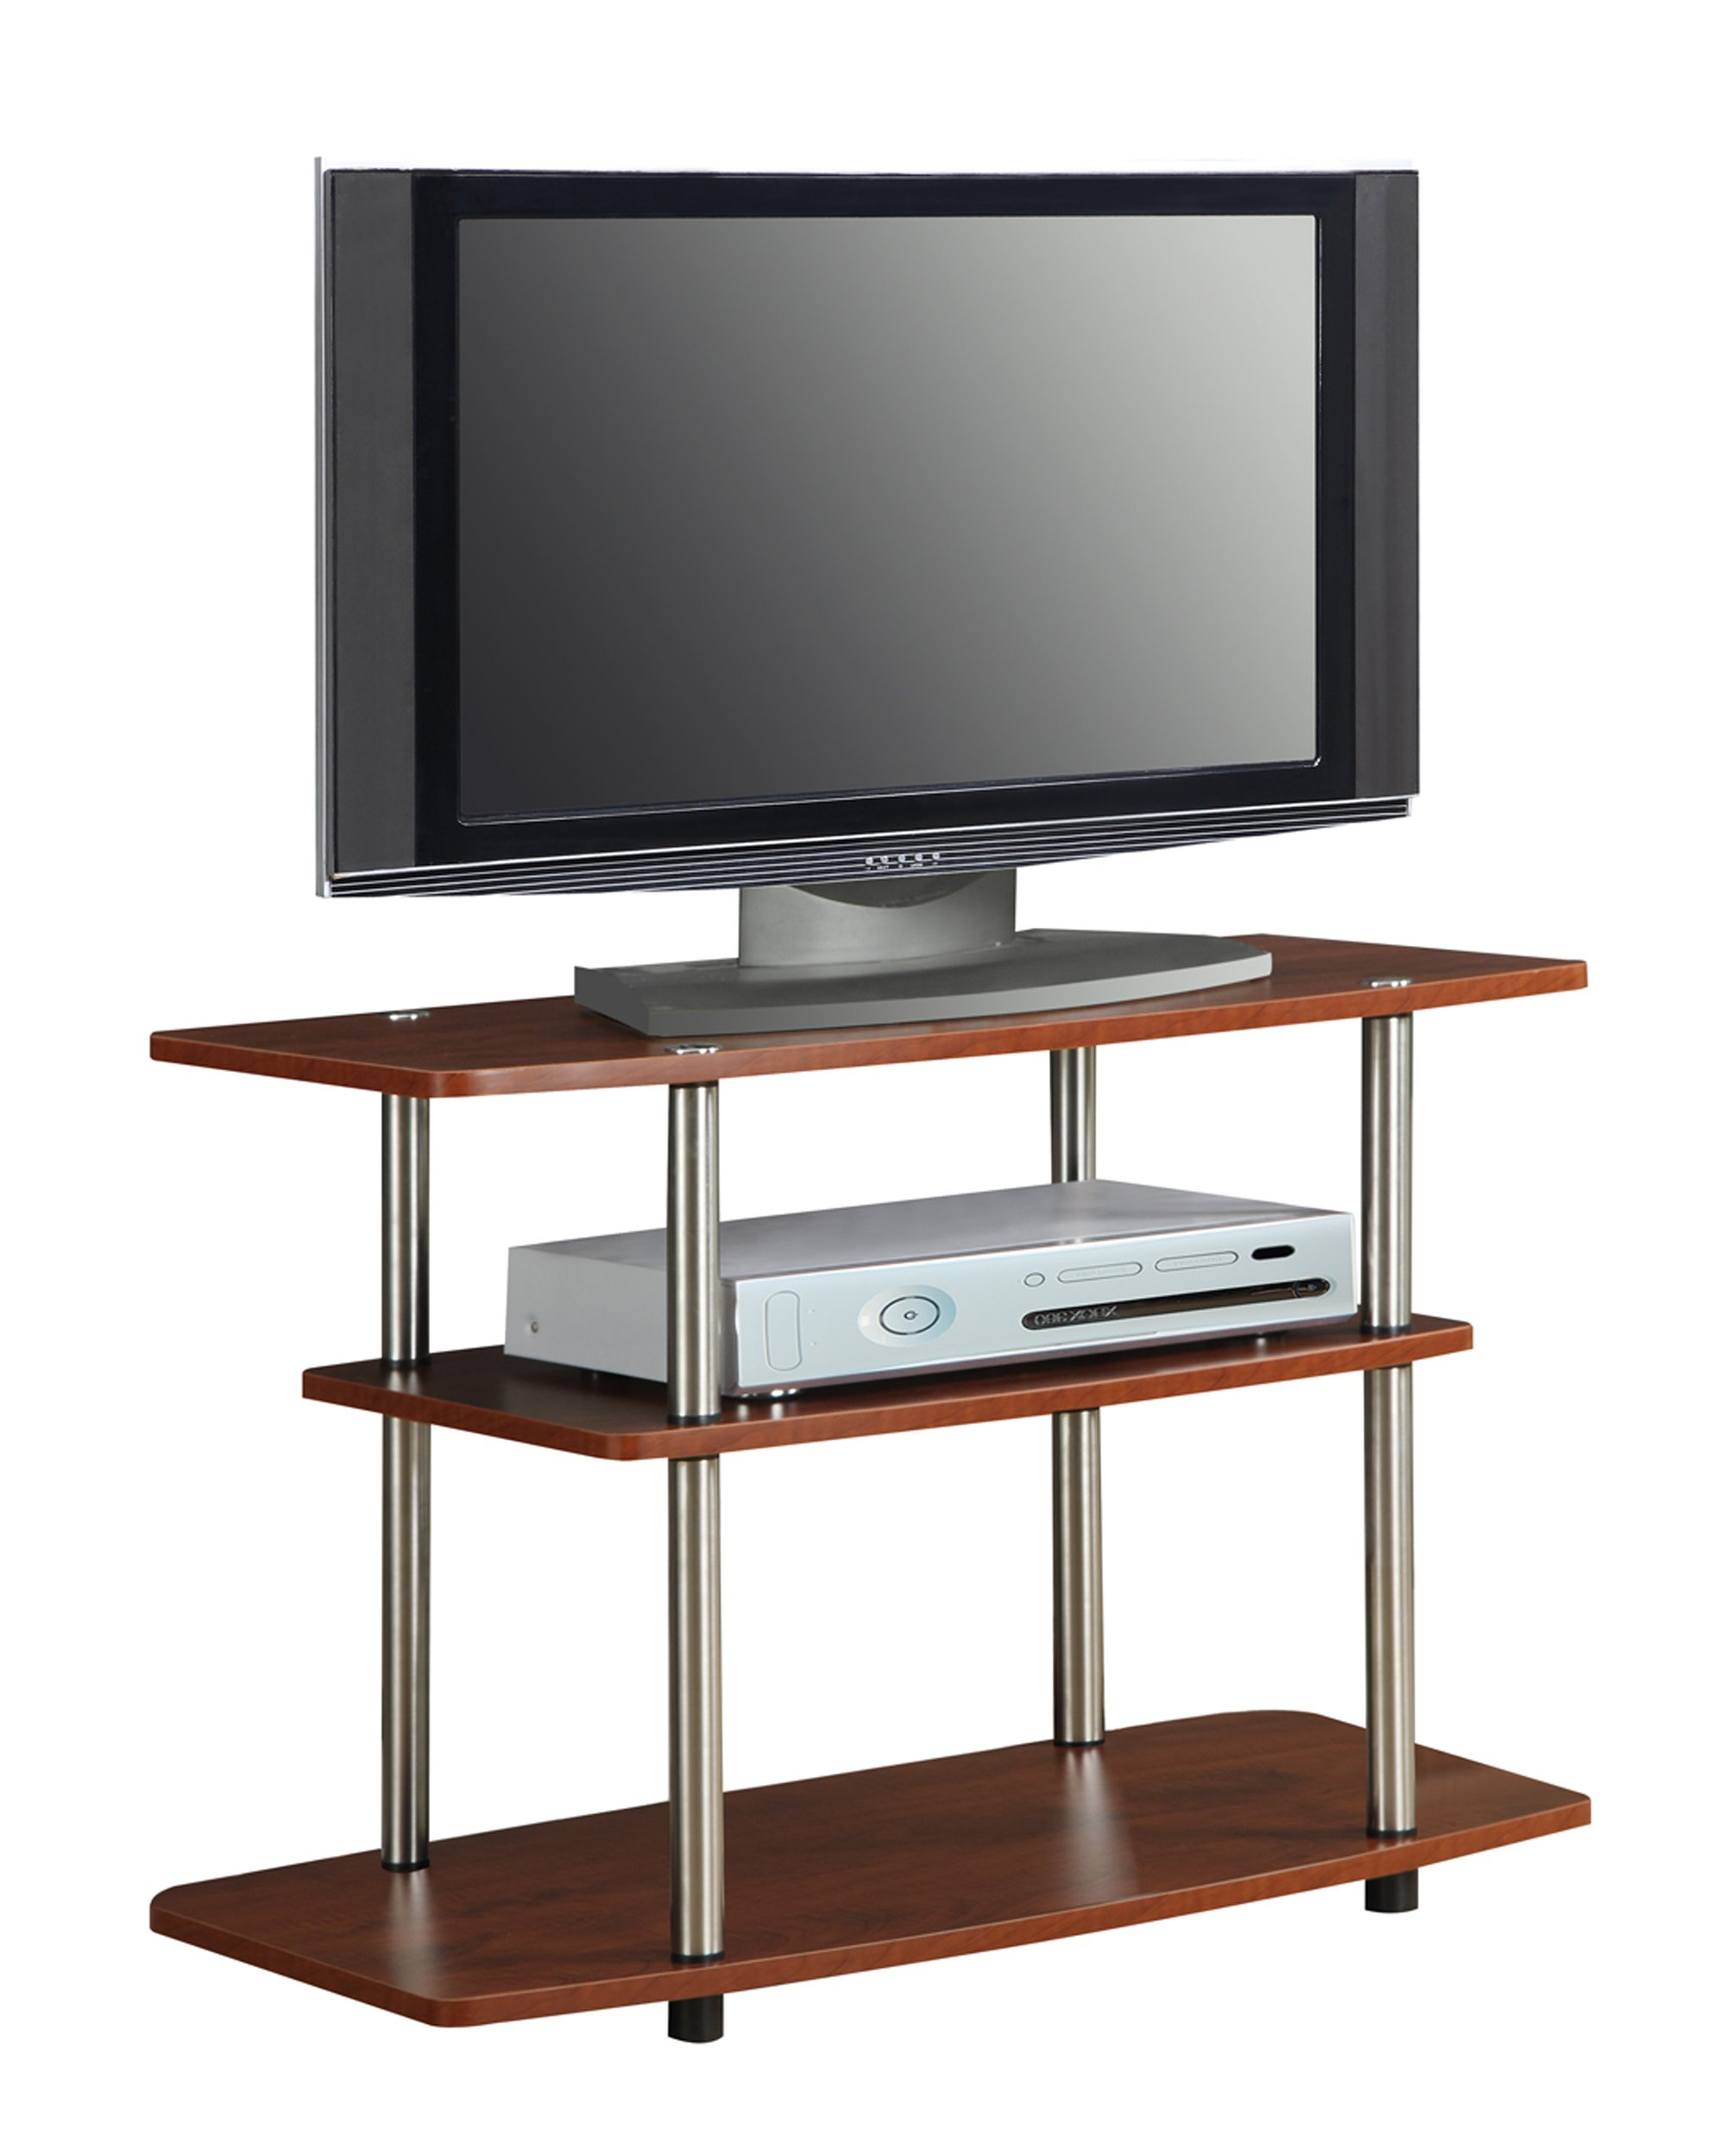 Convenience Concepts Designs2Go 3-Tier TV Stand for Flat Panel Television Up to 32-Inch or 80-Pound, Cherry by Convenience Concepts (Image #2)